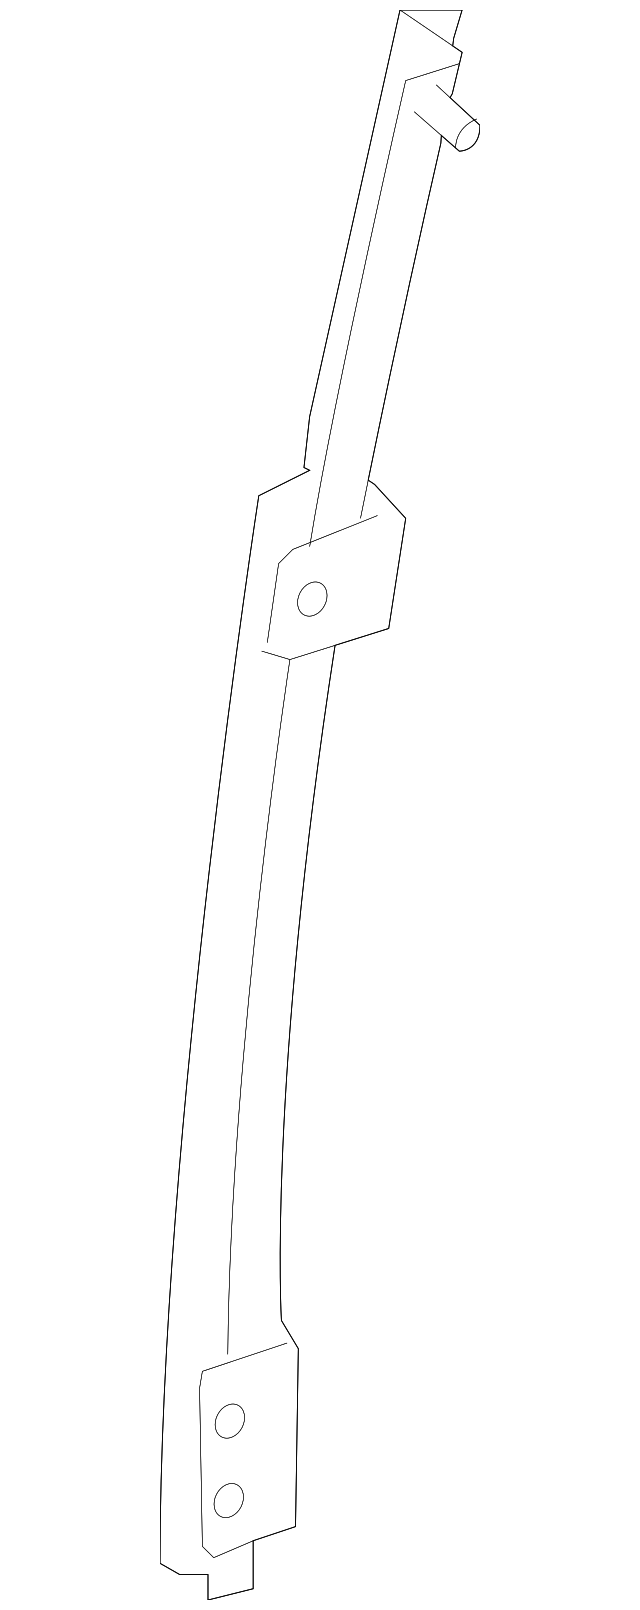 Guide Channel - Toyota (67407-0C050)